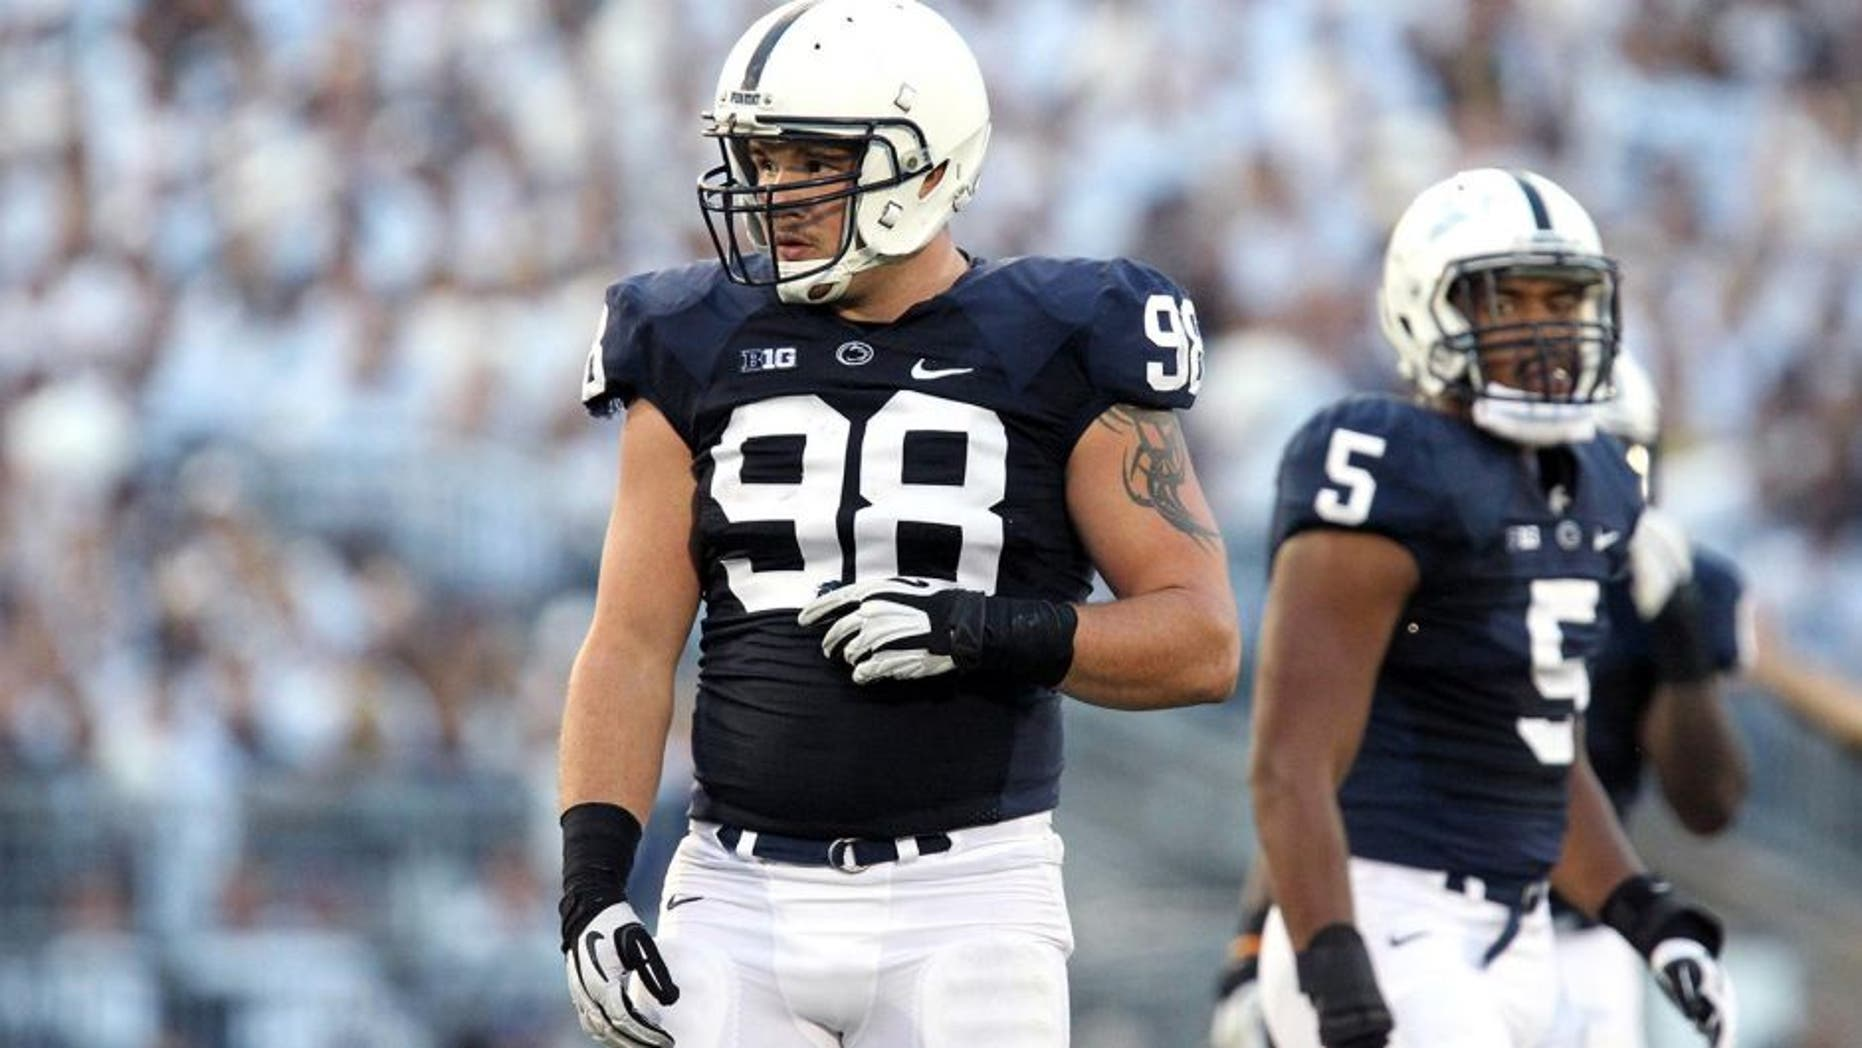 Oct 12, 2013; University Park, PA, USA; Penn State Nittany Lions defensive end Anthony Zettel (98) during the second quarter against the Michigan Wolverines at Beaver Stadium. Penn State defeated Michigan 43-40 in overtime. Mandatory Credit: Matthew O'Haren-USA TODAY Sports